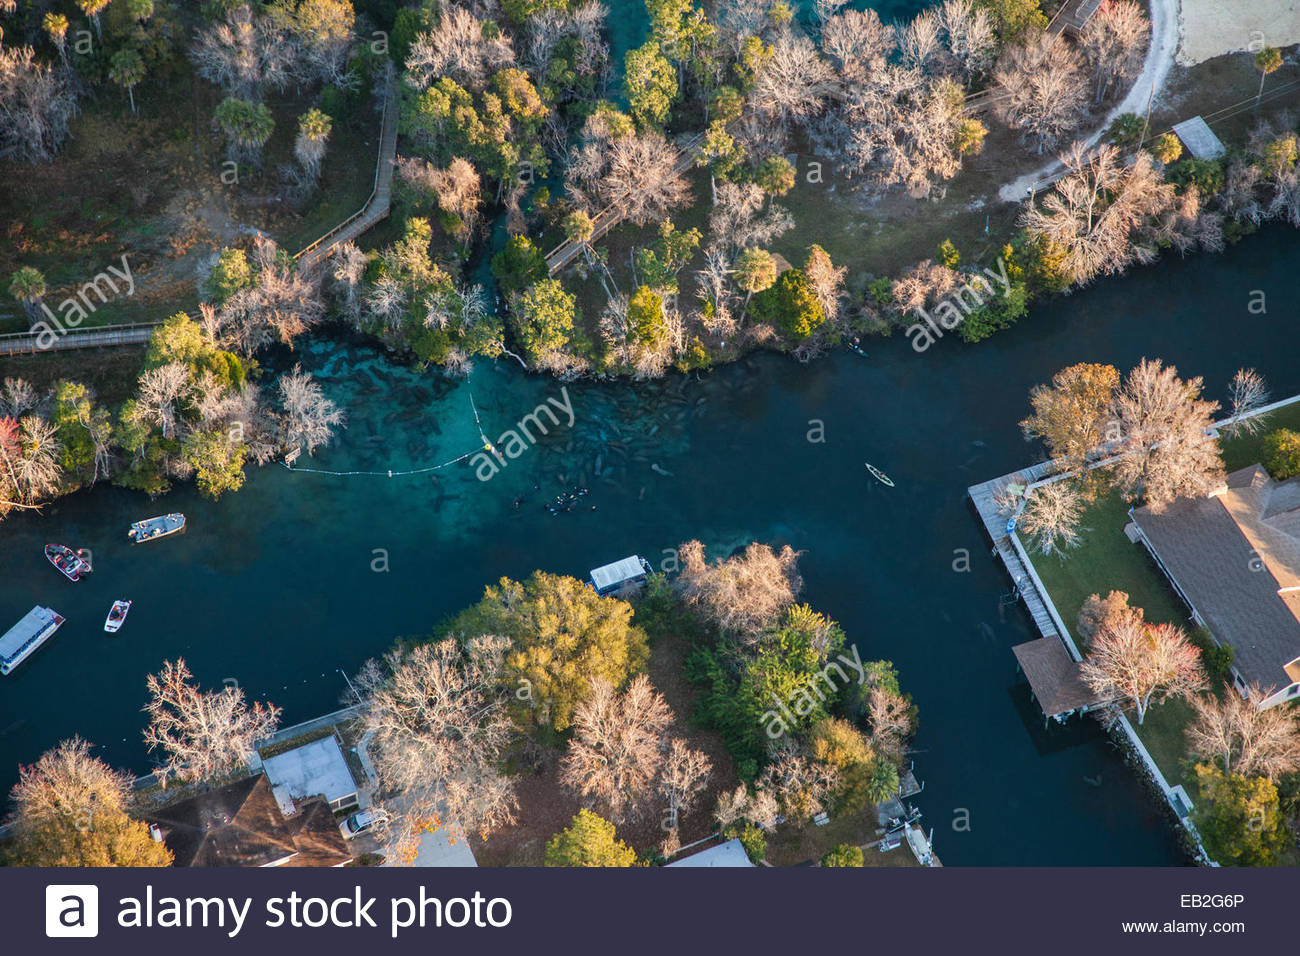 Three Sisters Springs; a heavily developed series of canals where manatees and people are forced to live together. - Stock Image